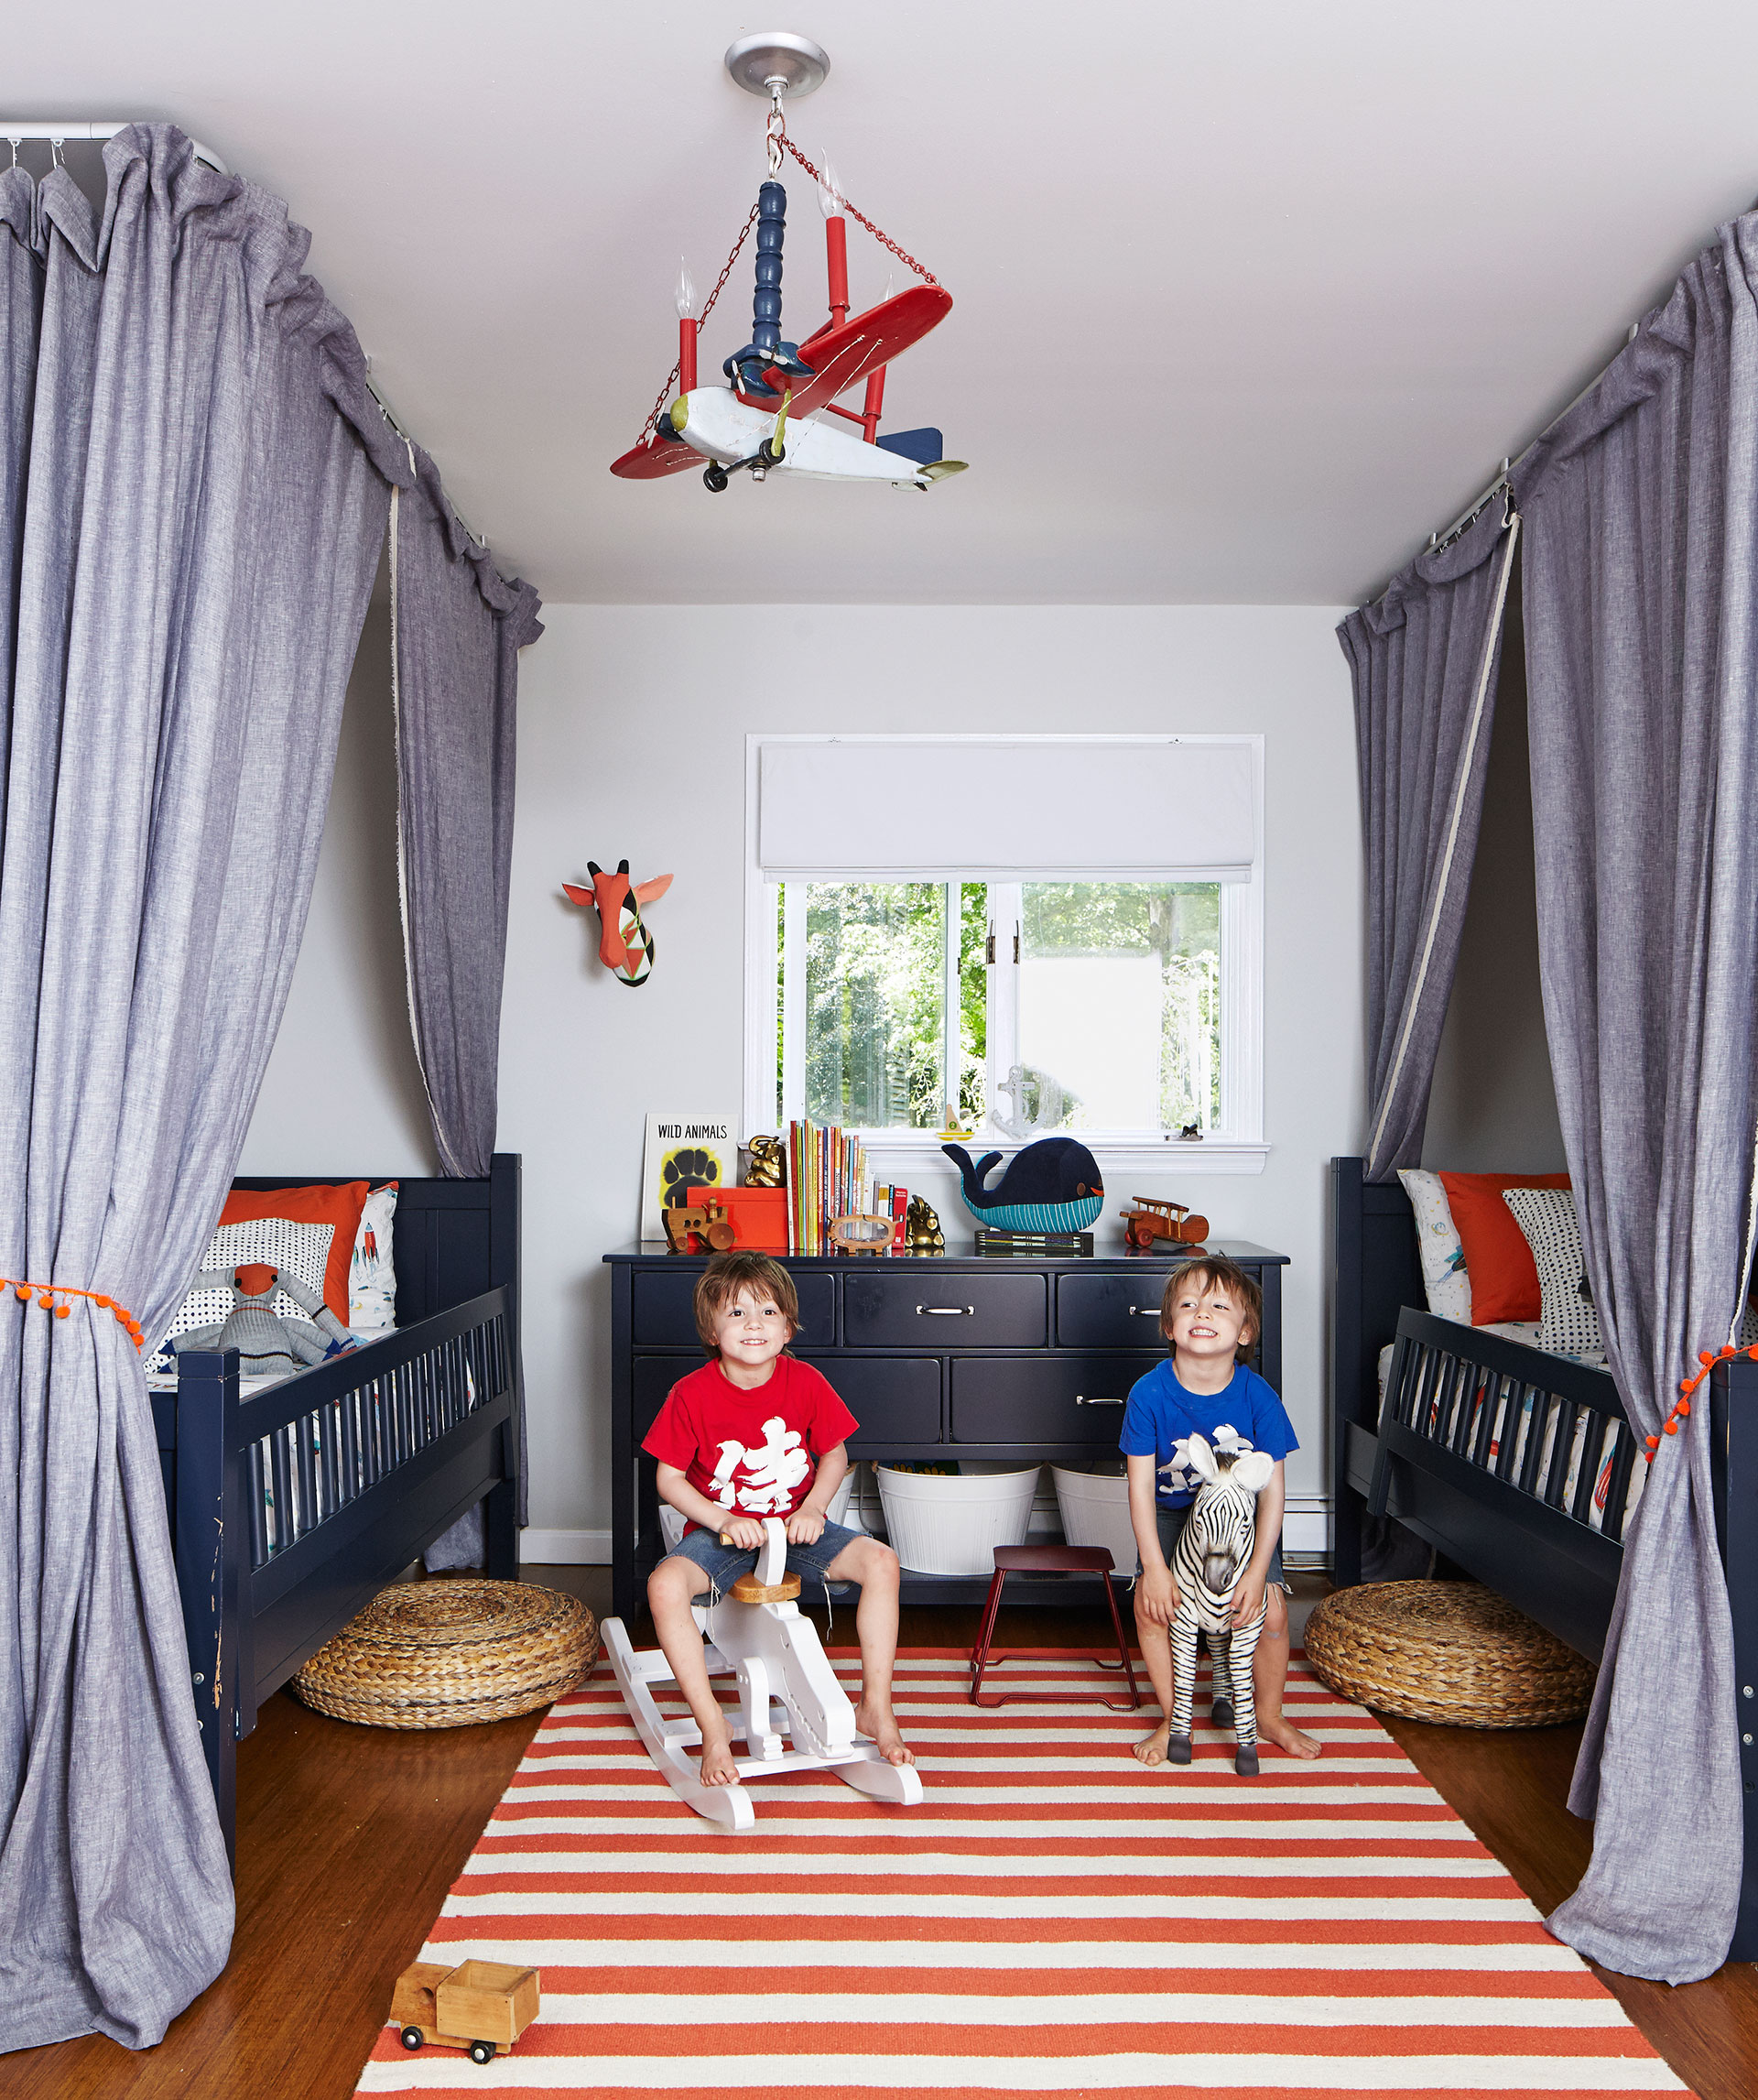 kids room ideas design and decorating ideas for kids rooms - How To Decorate Boys Room Ideas